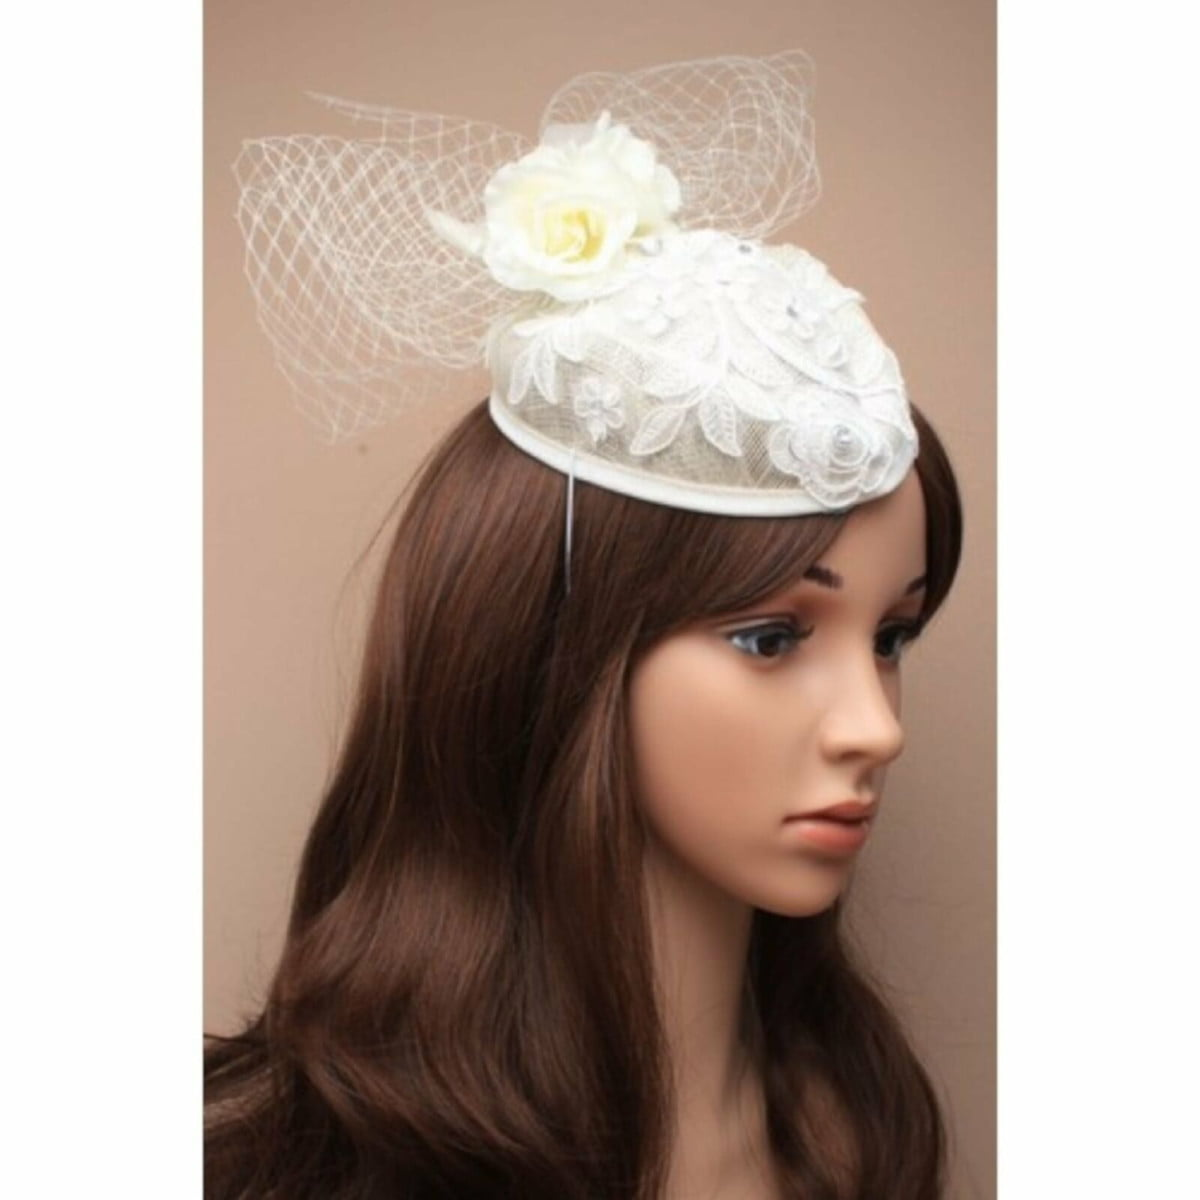 White wedding fascinator with rhinestone detailing